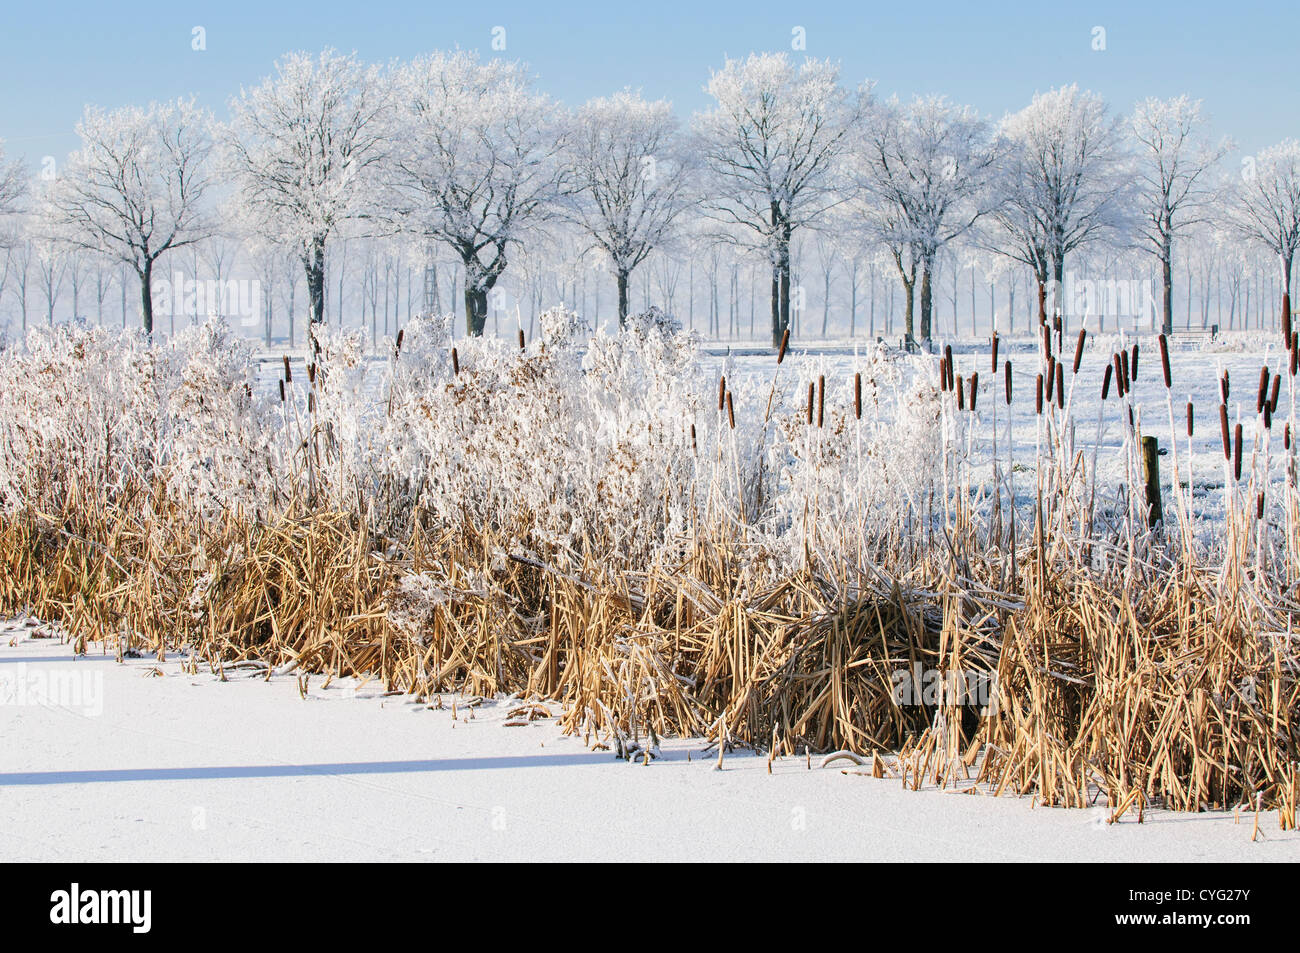 Winter landscape with snow and ice and vegetation on the bank of a canal with a row of trees in the background - Stock Image